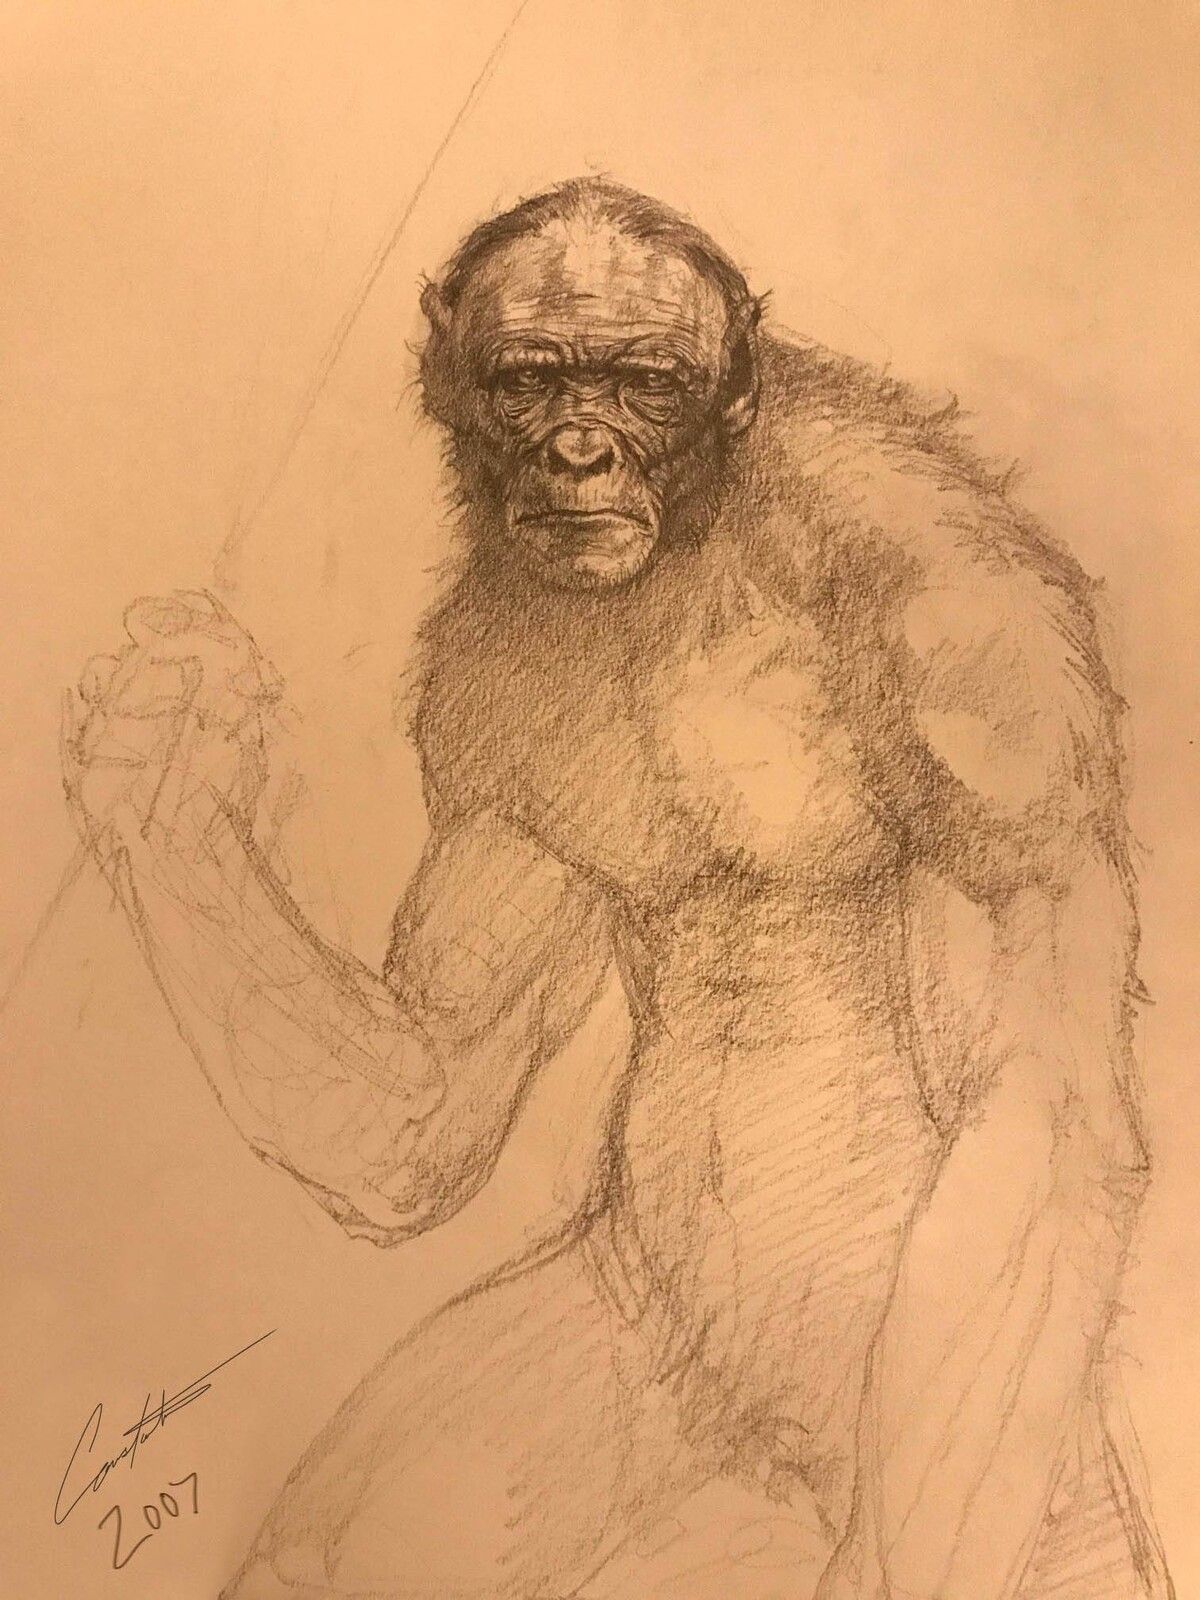 Ape man design for cancelled project